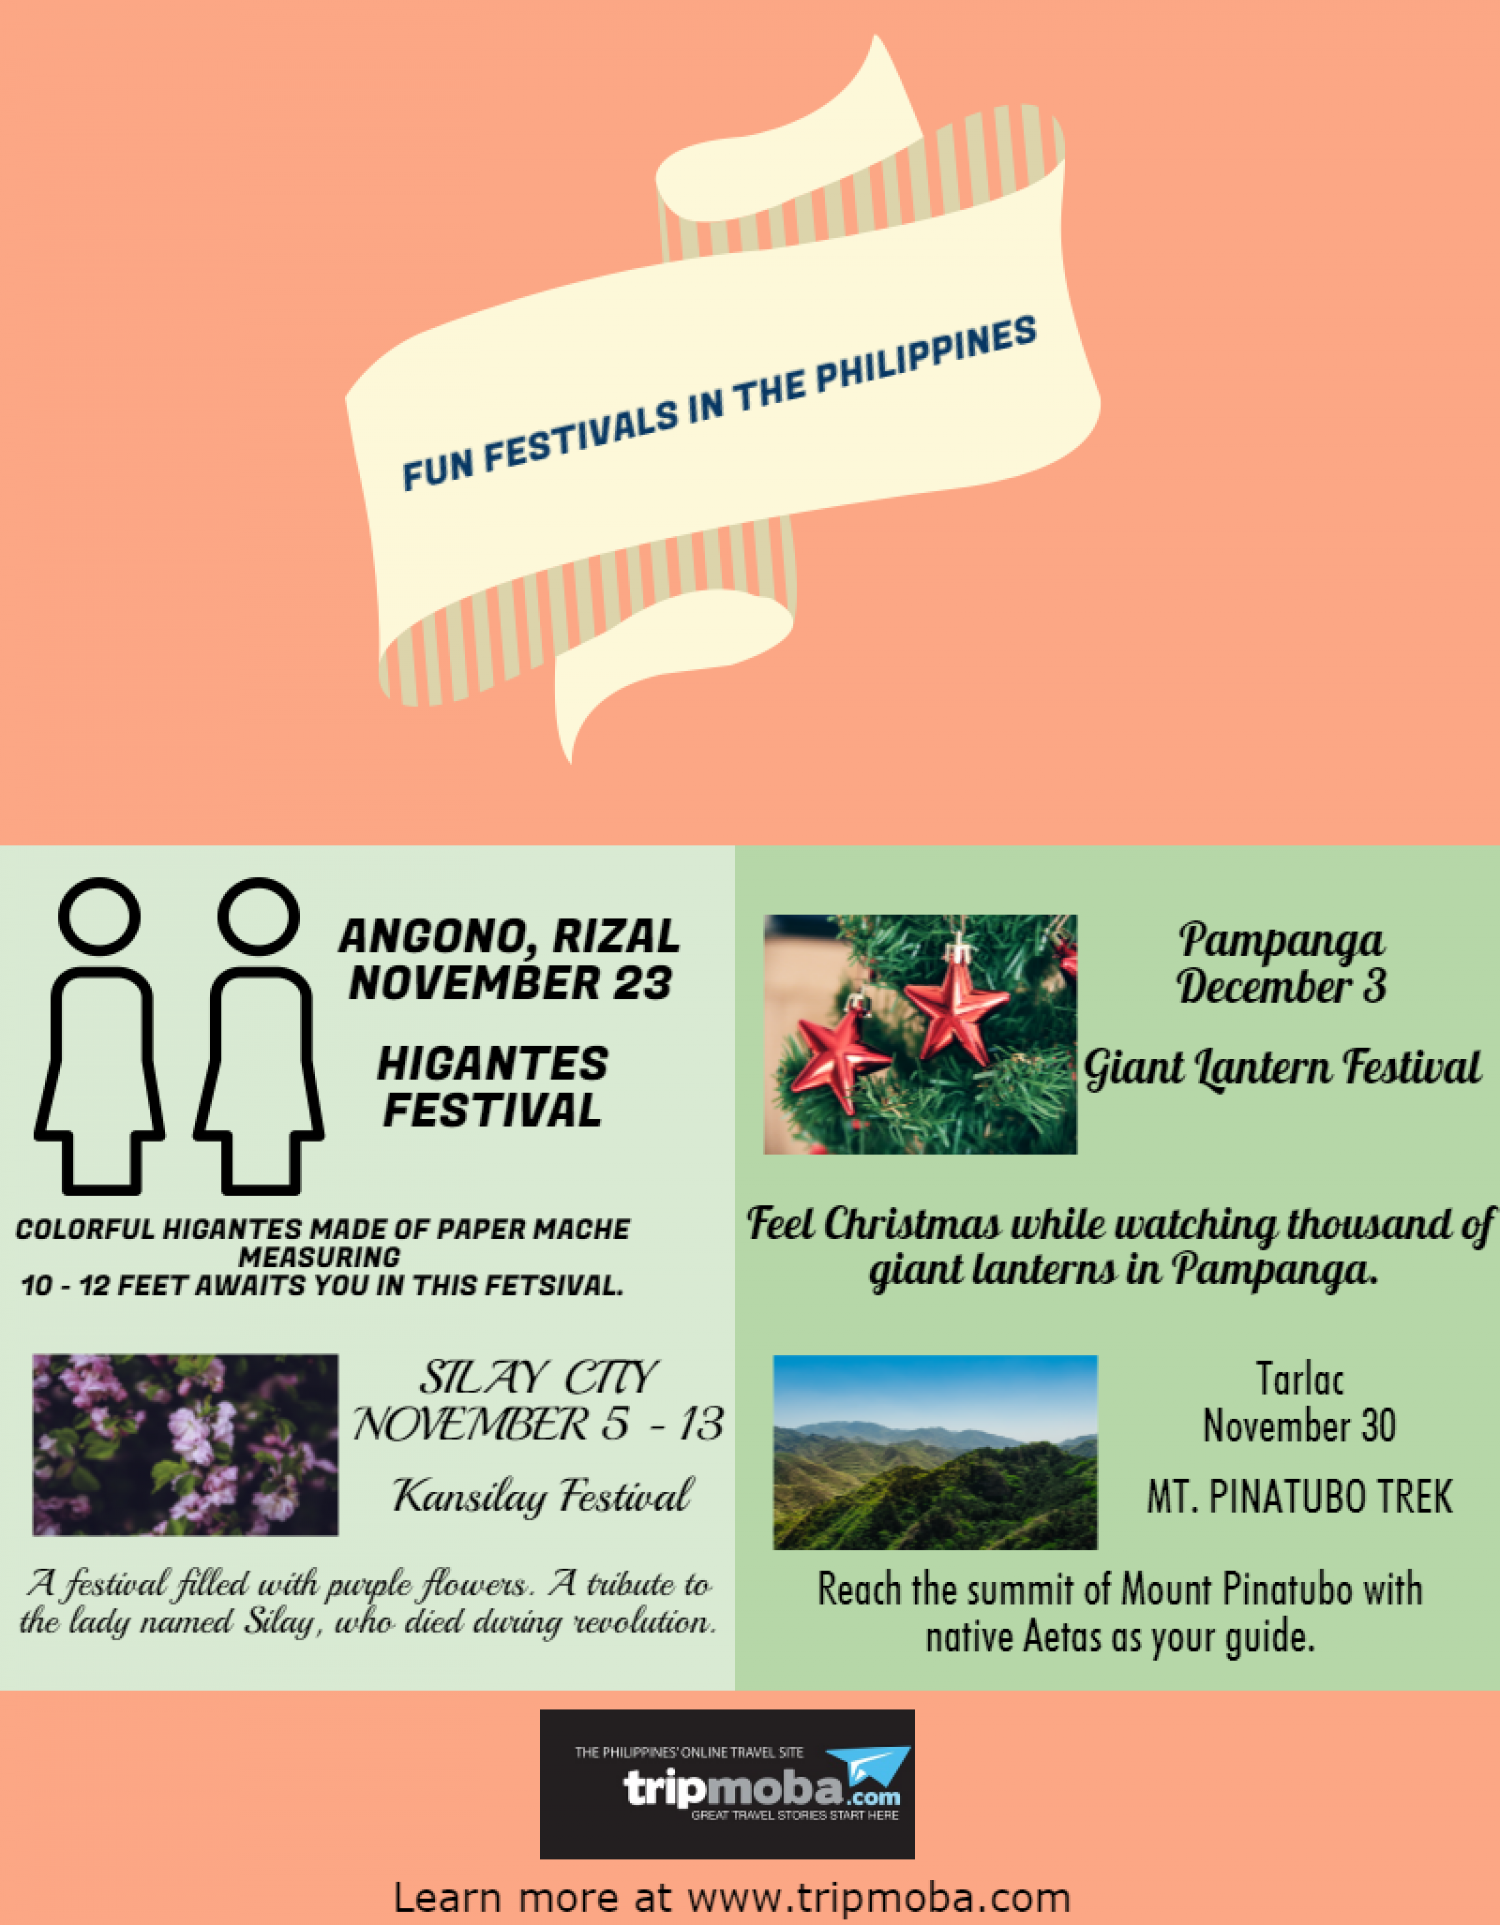 Fun Festivals In The Philippines Infographic